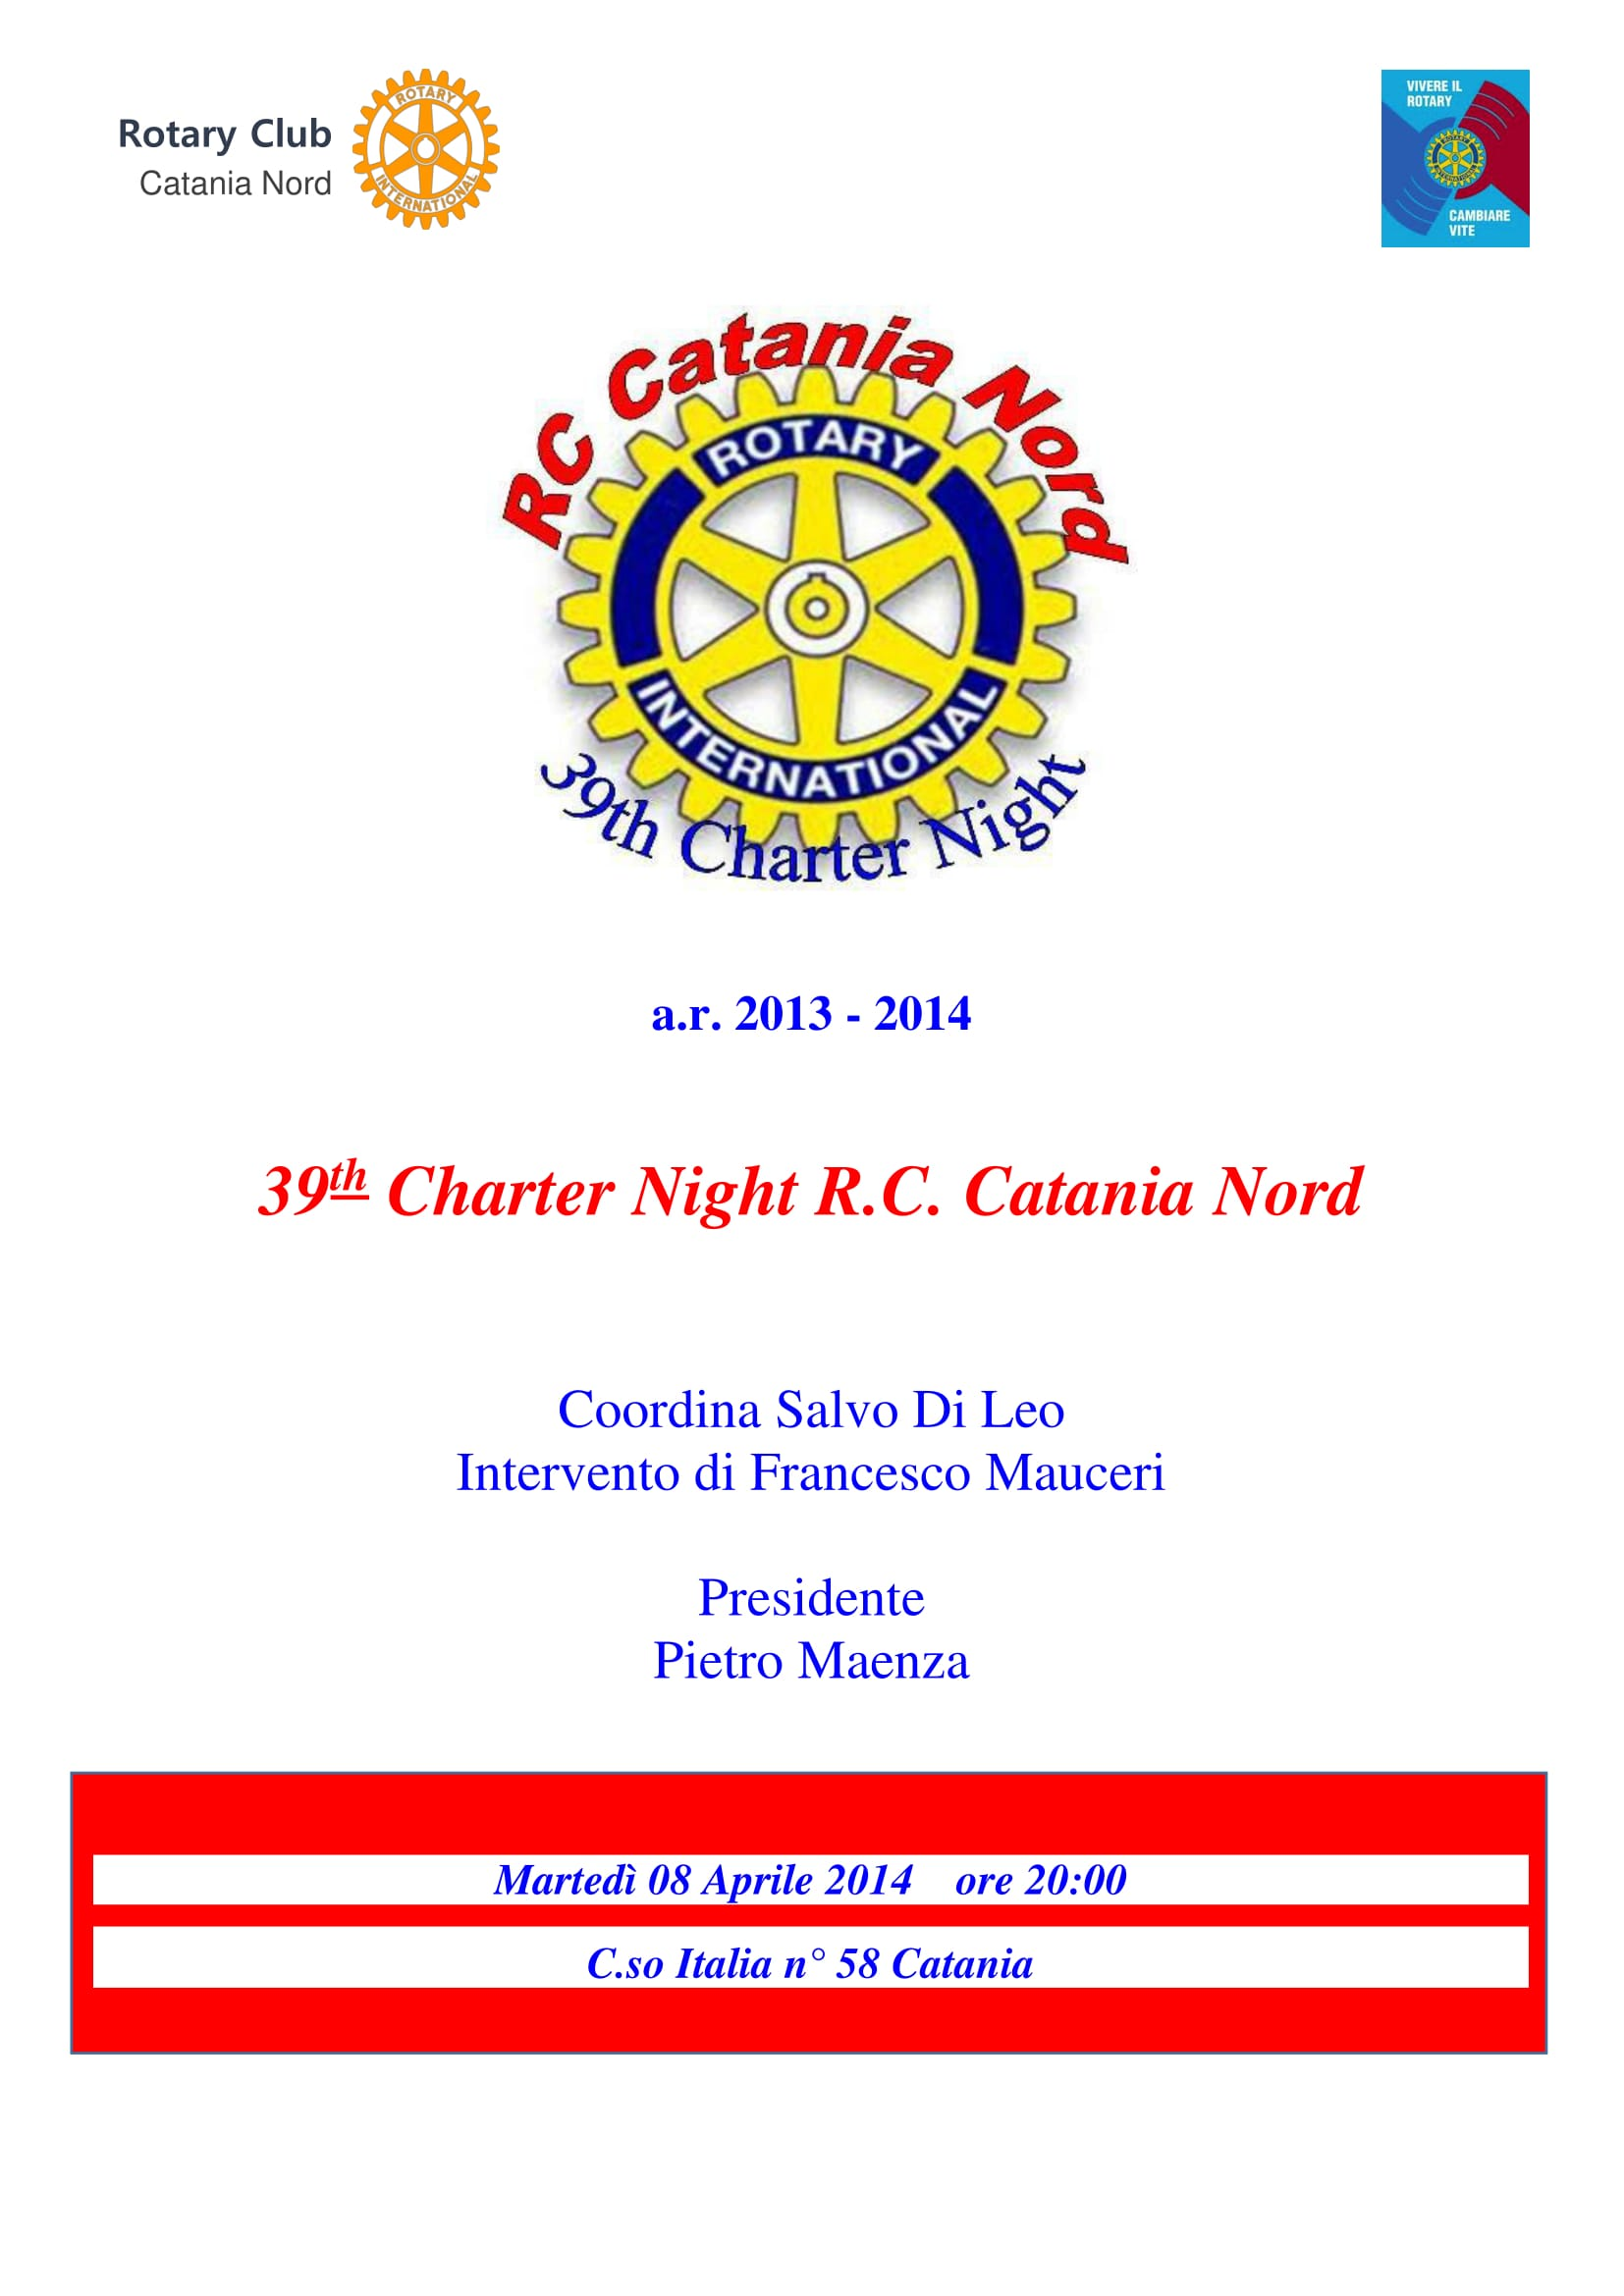 2014 04 08 locandina 39th Charter Night